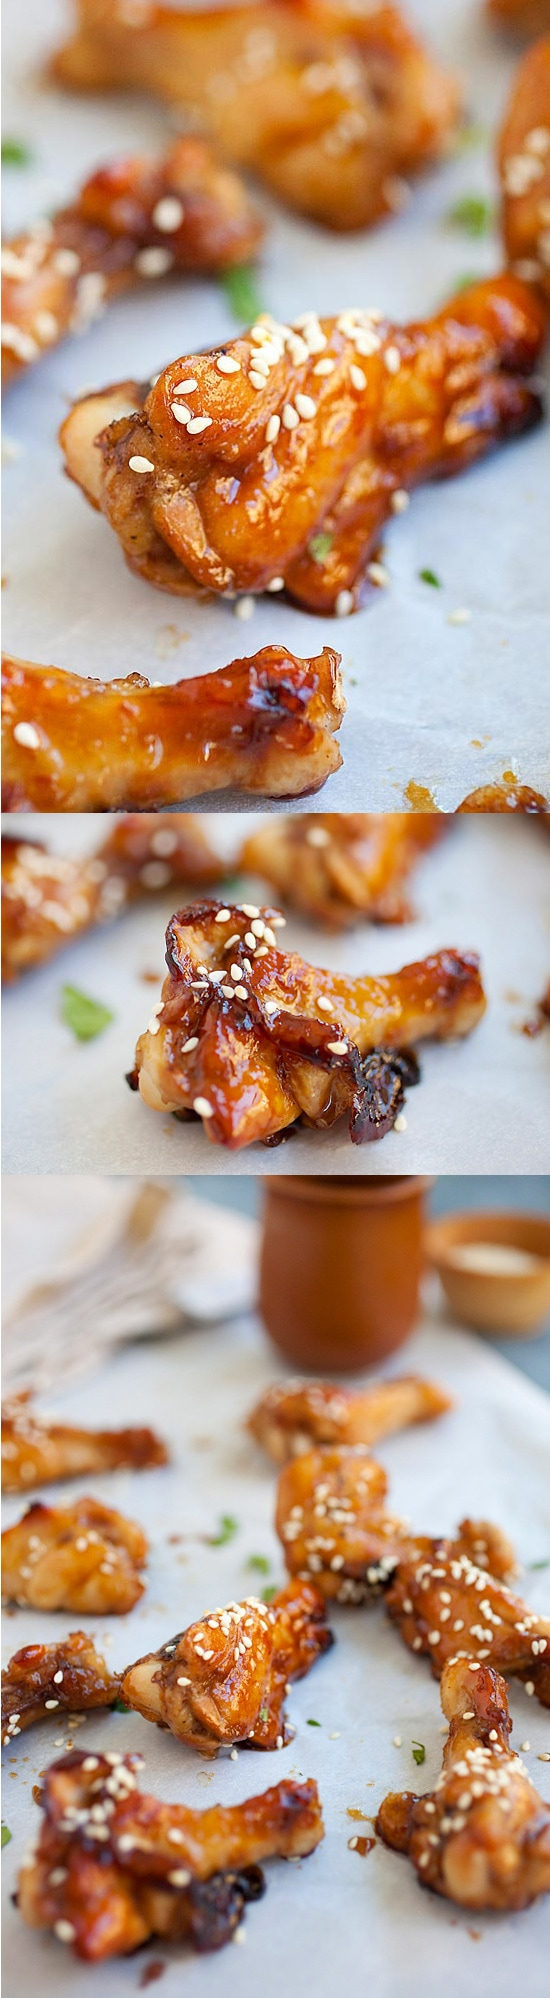 Honey Soy Chicken Wings - sweet and sticky wings with honey and soy sauce glaze and baked in oven. Quick and no-fuss everyday recipe! | rasamalaysia.com